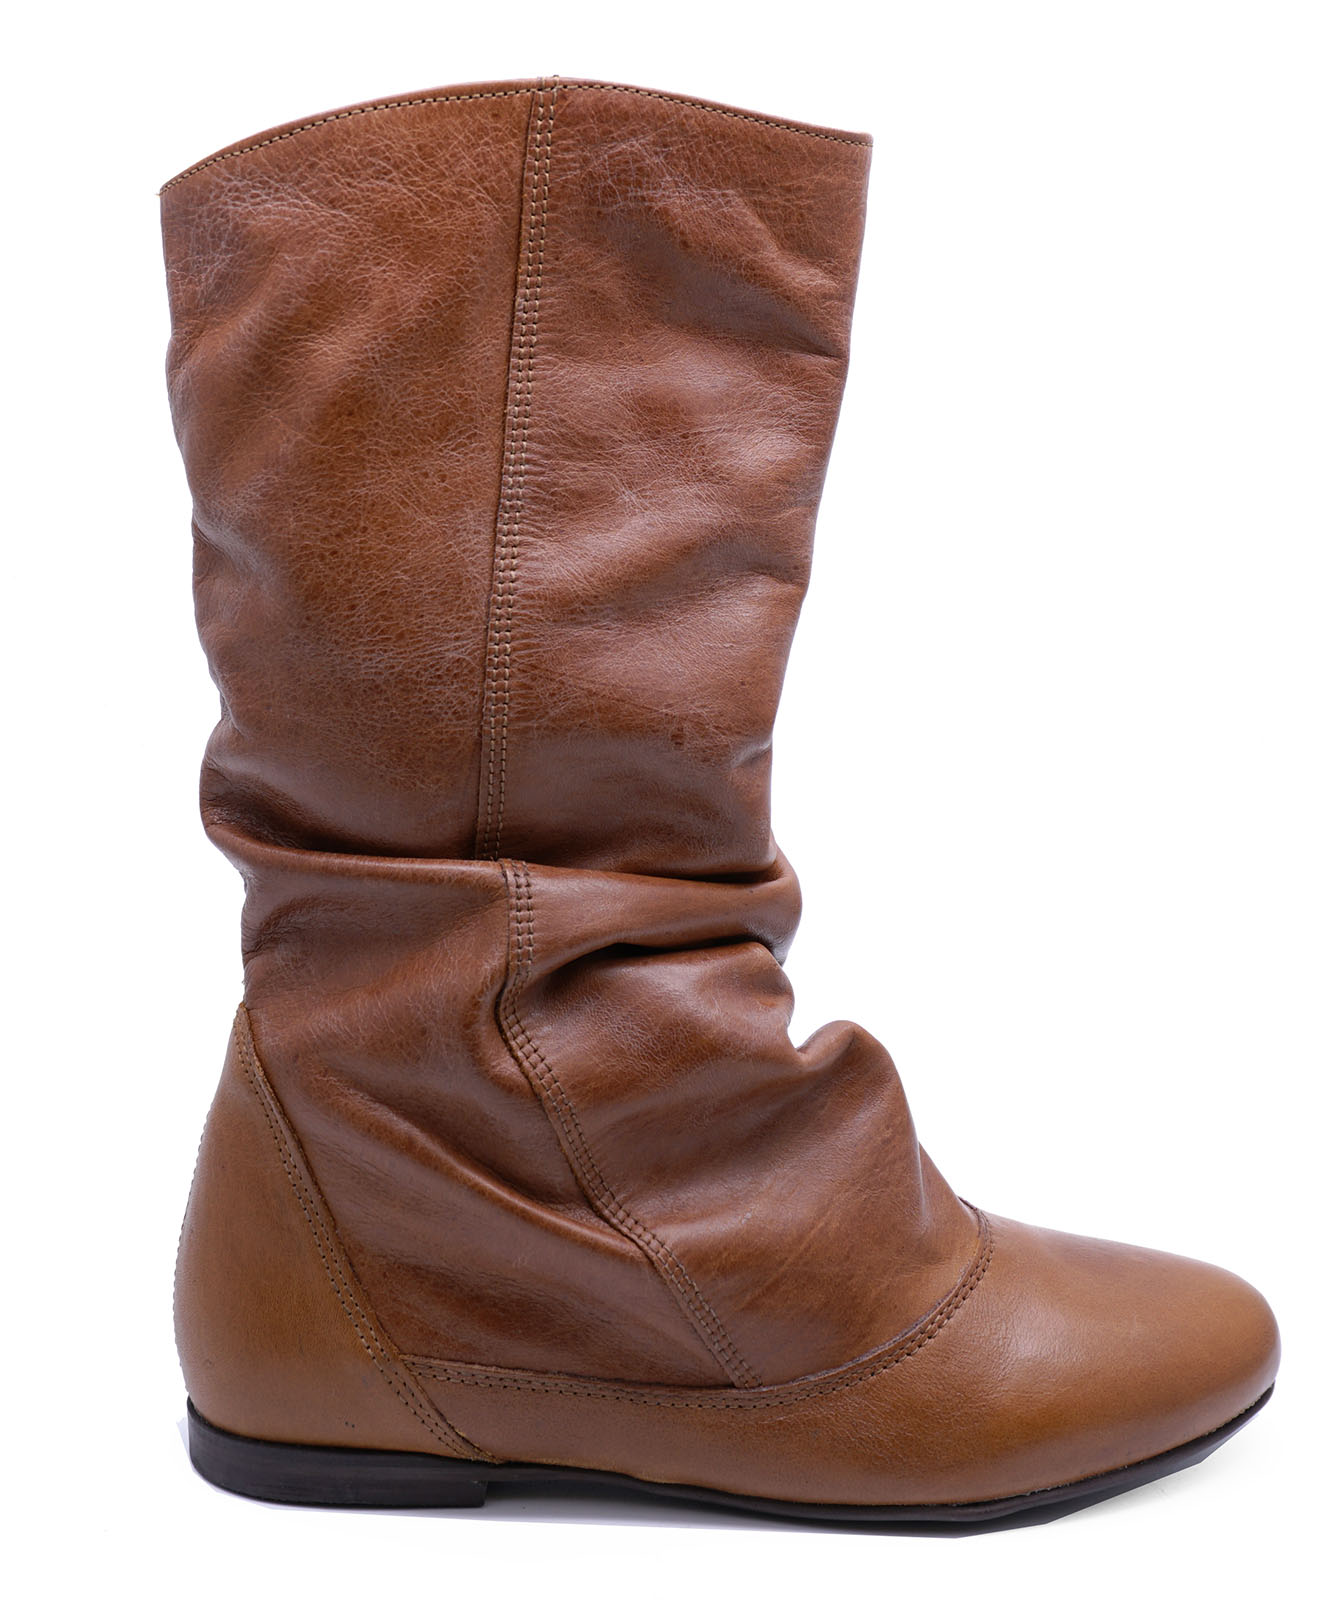 34c0d6da775 Sentinel LADIES REAL LEATHER TAN FLAT SLOUCH COMFY RUCHED TALL KNEE-HIGH  CALF BOOTS 3-